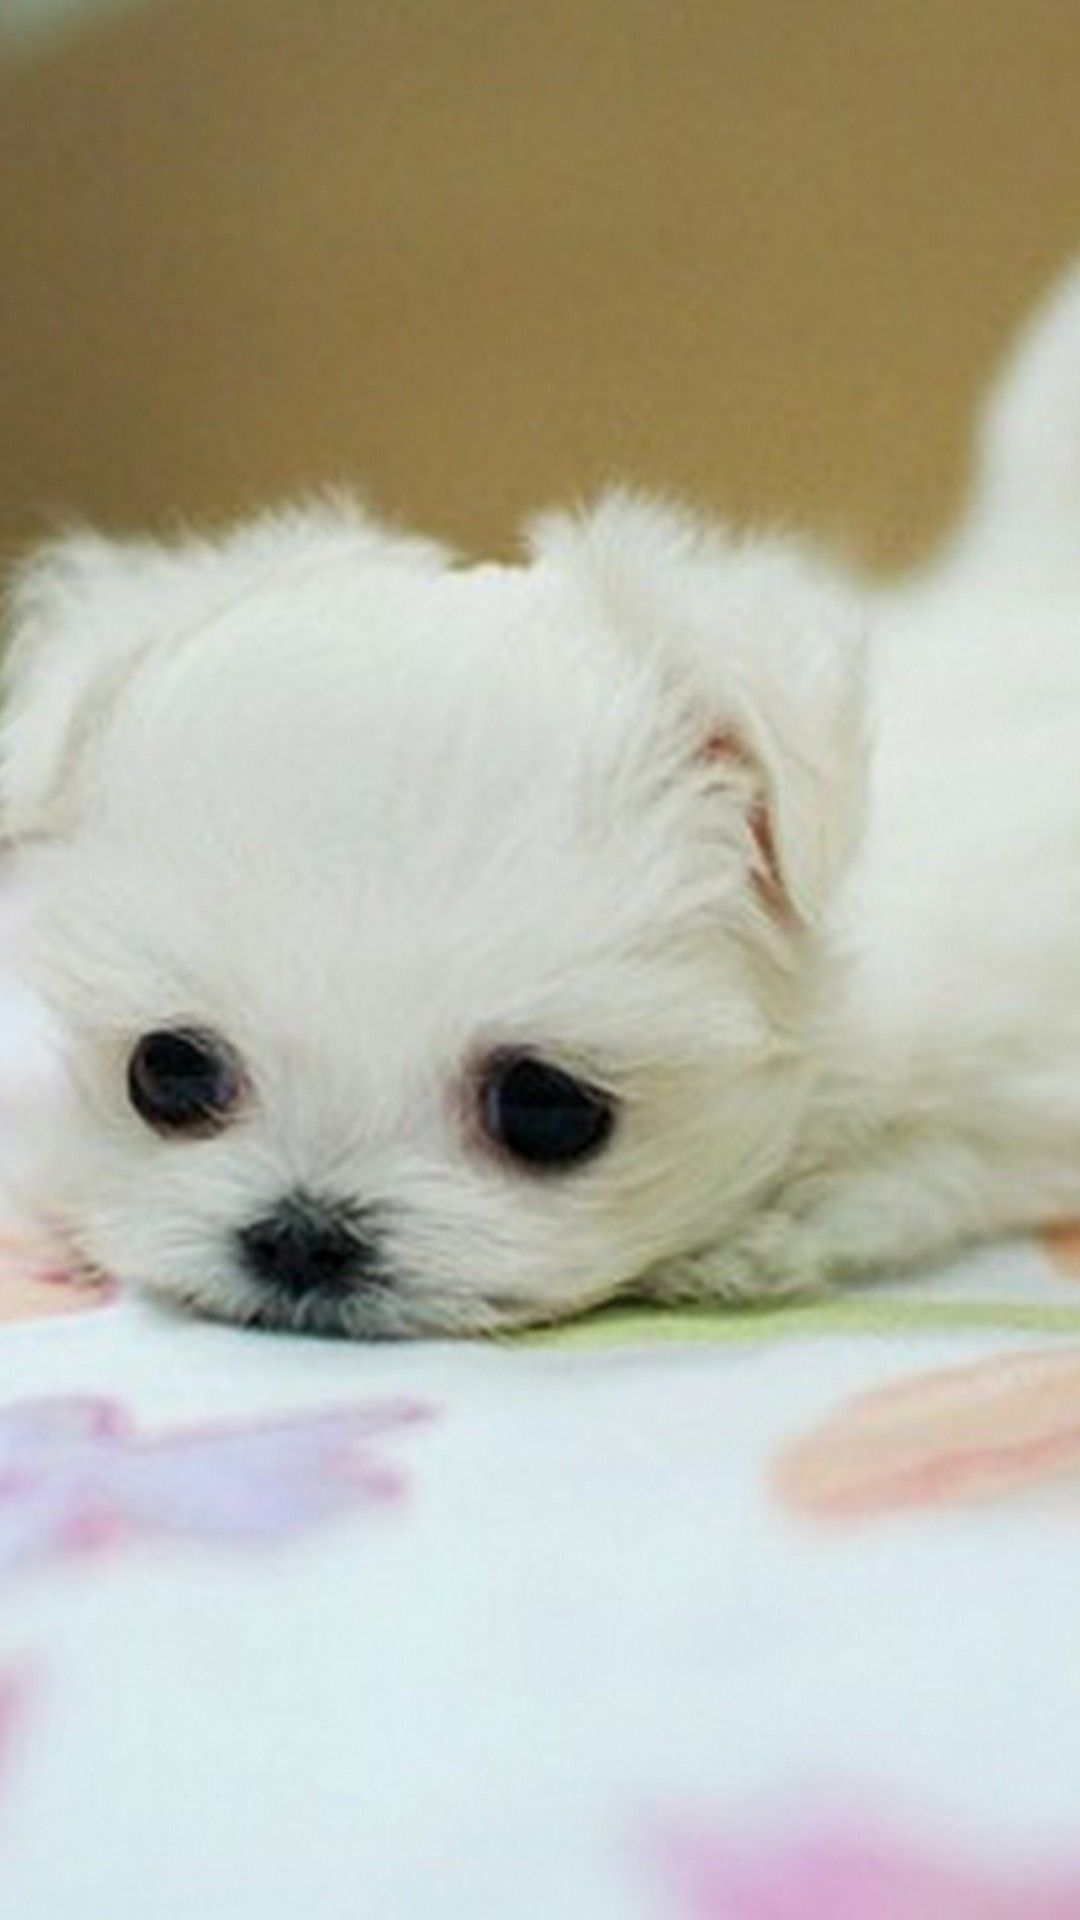 Puppies Hd Wallpapers For Mobile Puppies Cute Dogs Hd